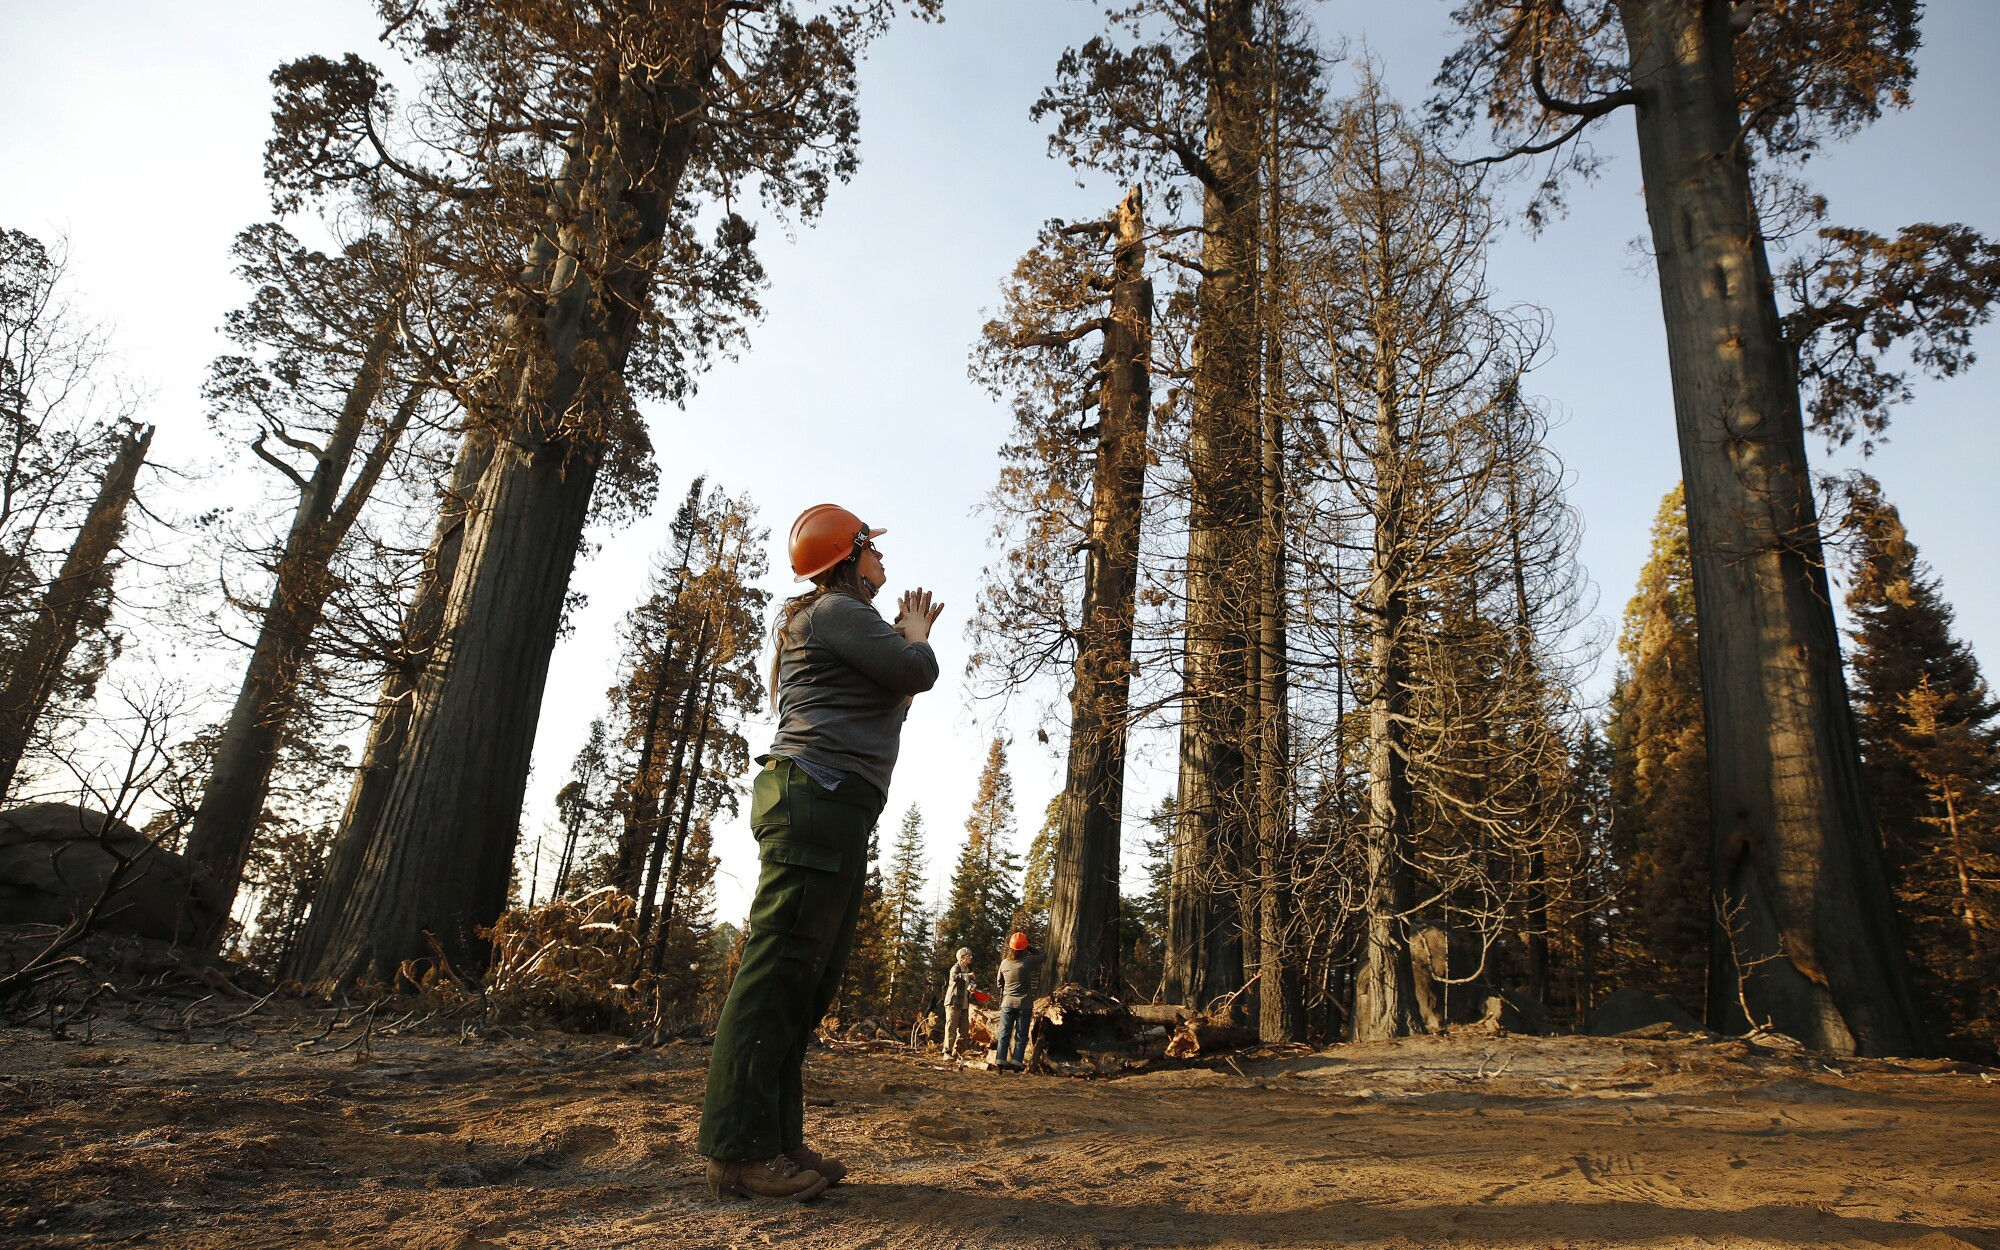 Kristen Shive, director of science for Save the Redwoods League, in the privately owned Alder Creek grove of sequoias.